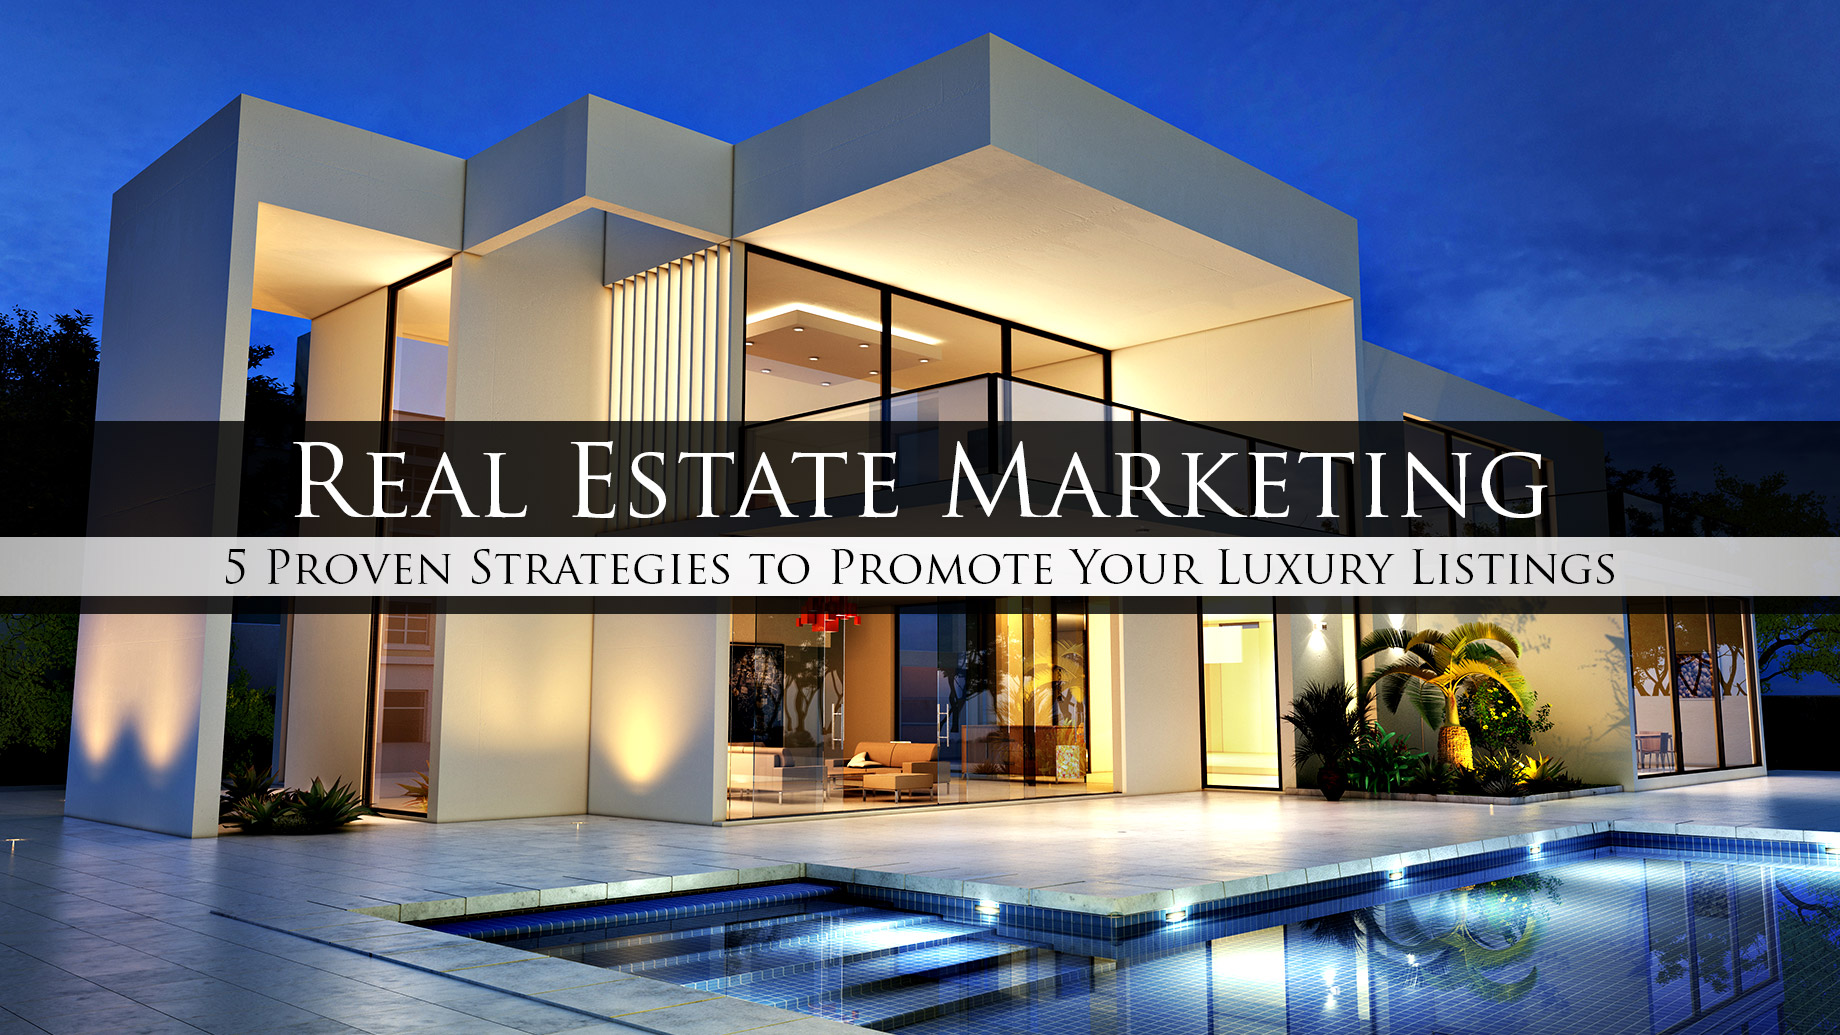 Real Estate Marketing - 5 Proven Strategies to Promote Your Luxury Listings